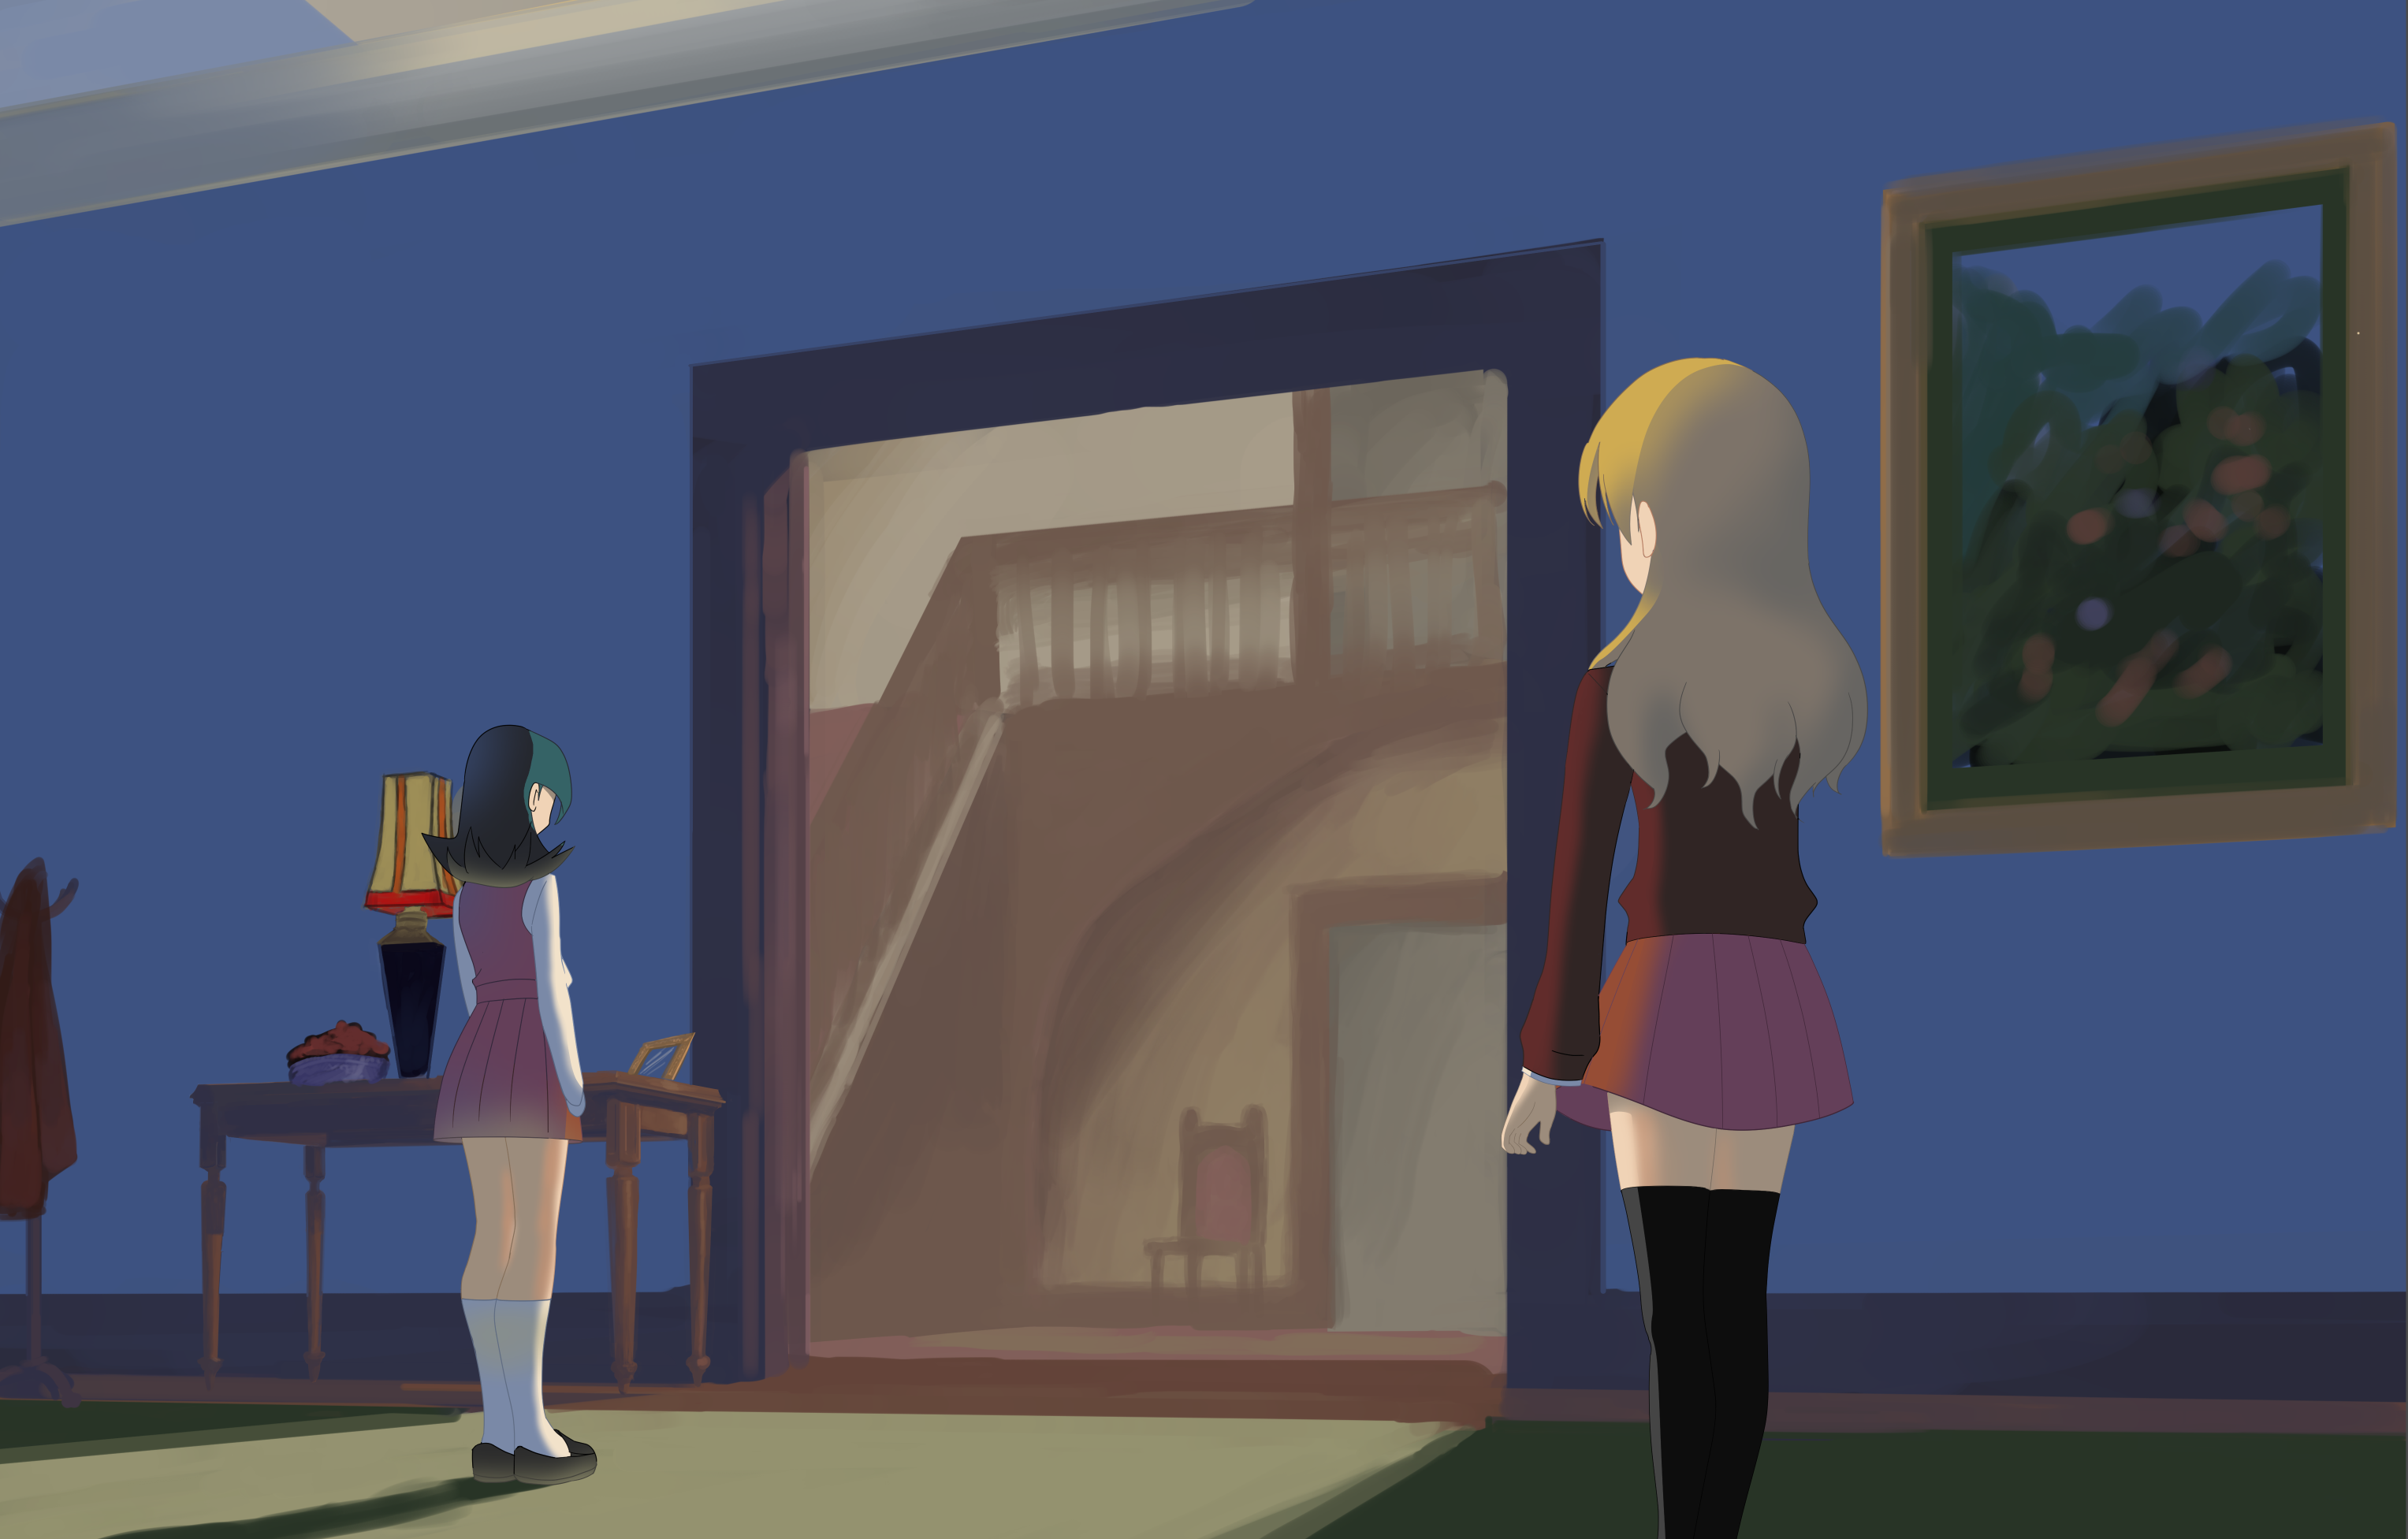 Foyer Wallpaper Anime : Foyer by crystalclair on deviantart